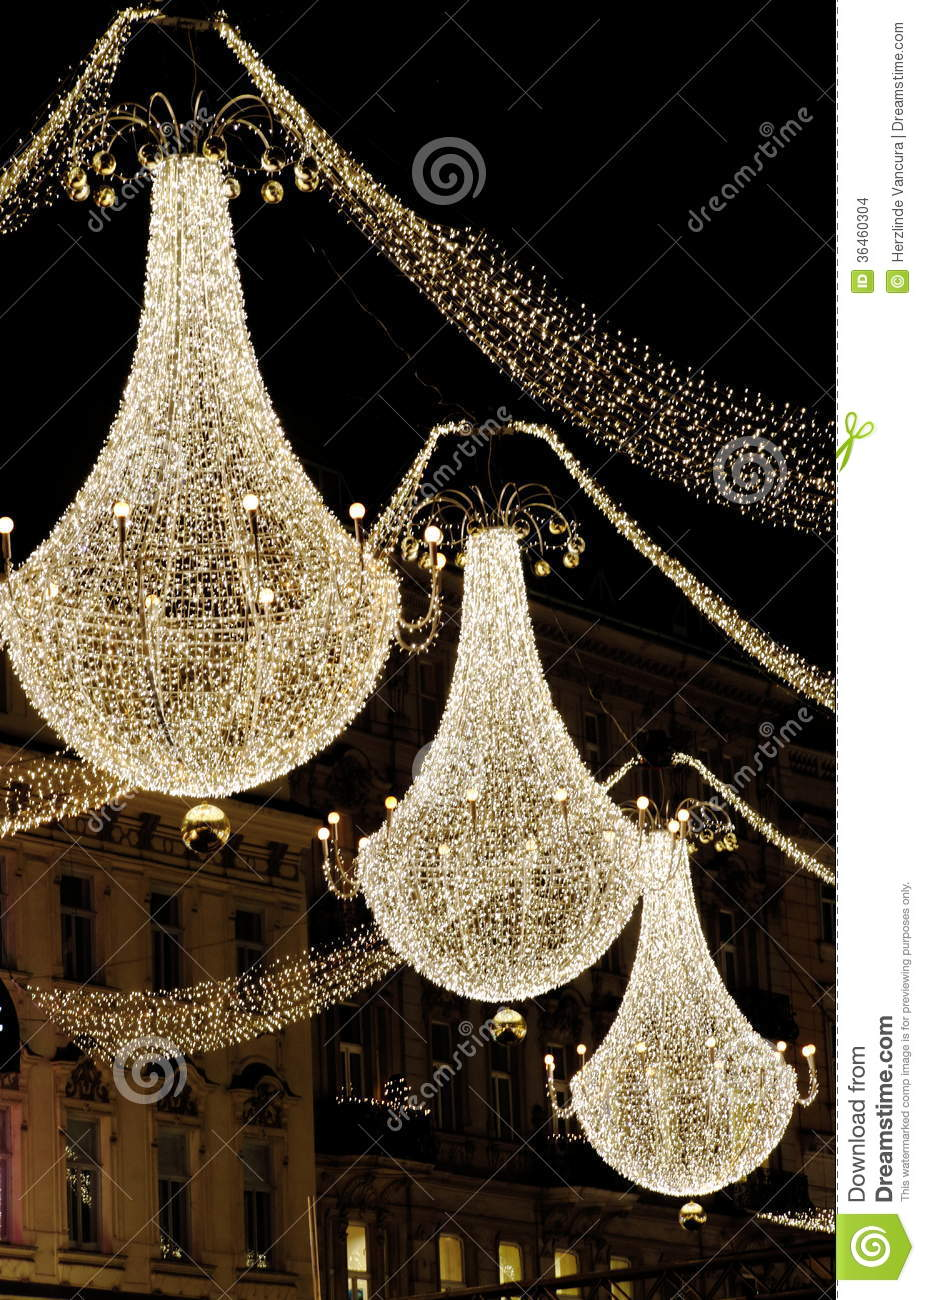 download christmas chandeliers stock photo image of white vienna 36460304